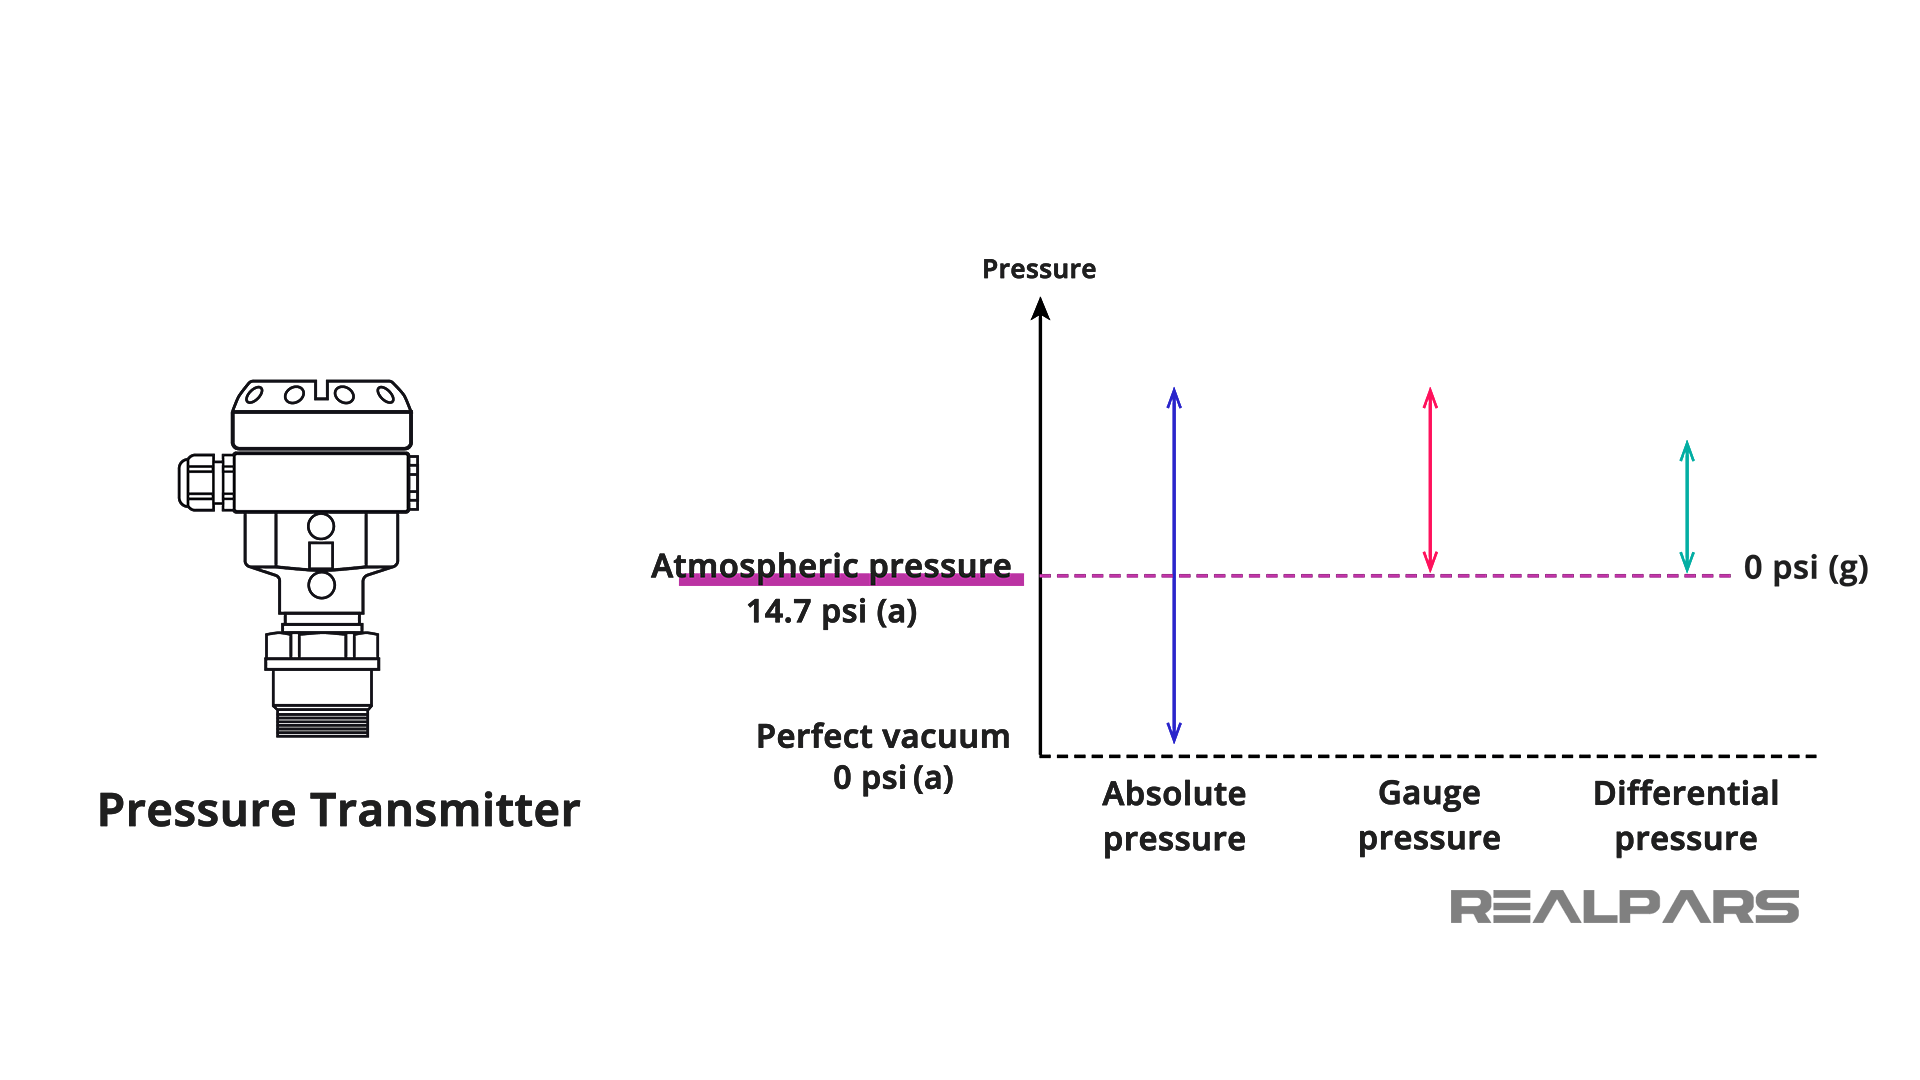 Absolute Pressure - Atmospheric Pressure - Differential Pressures